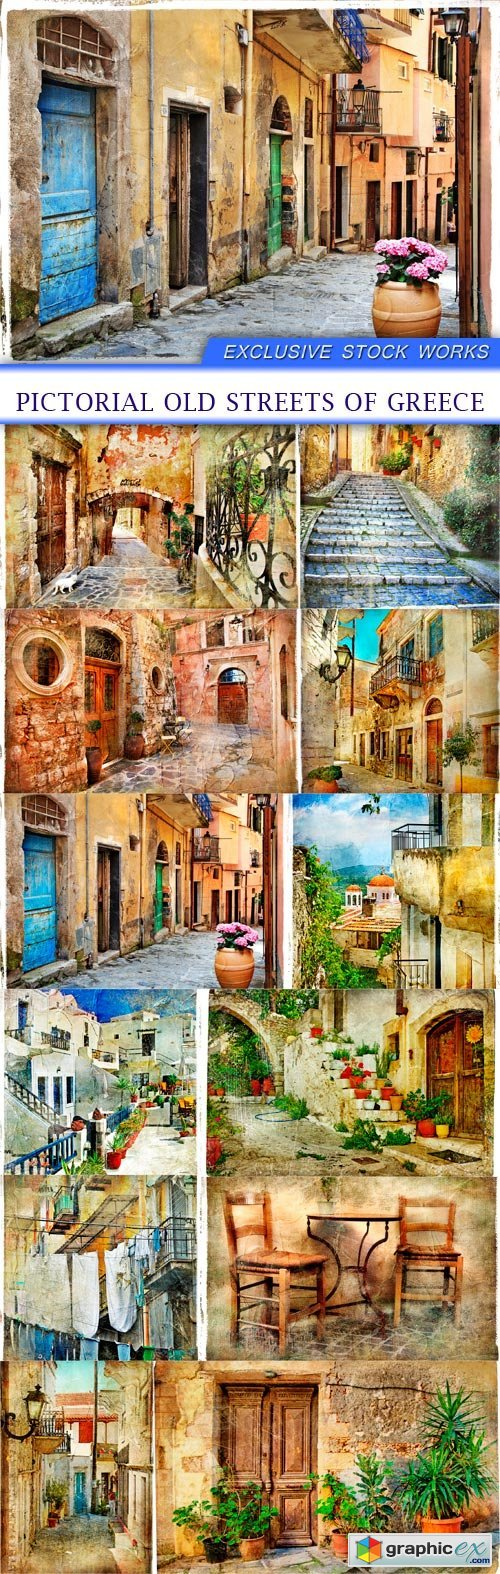 pictorial old streets of Greece 12X JPEG